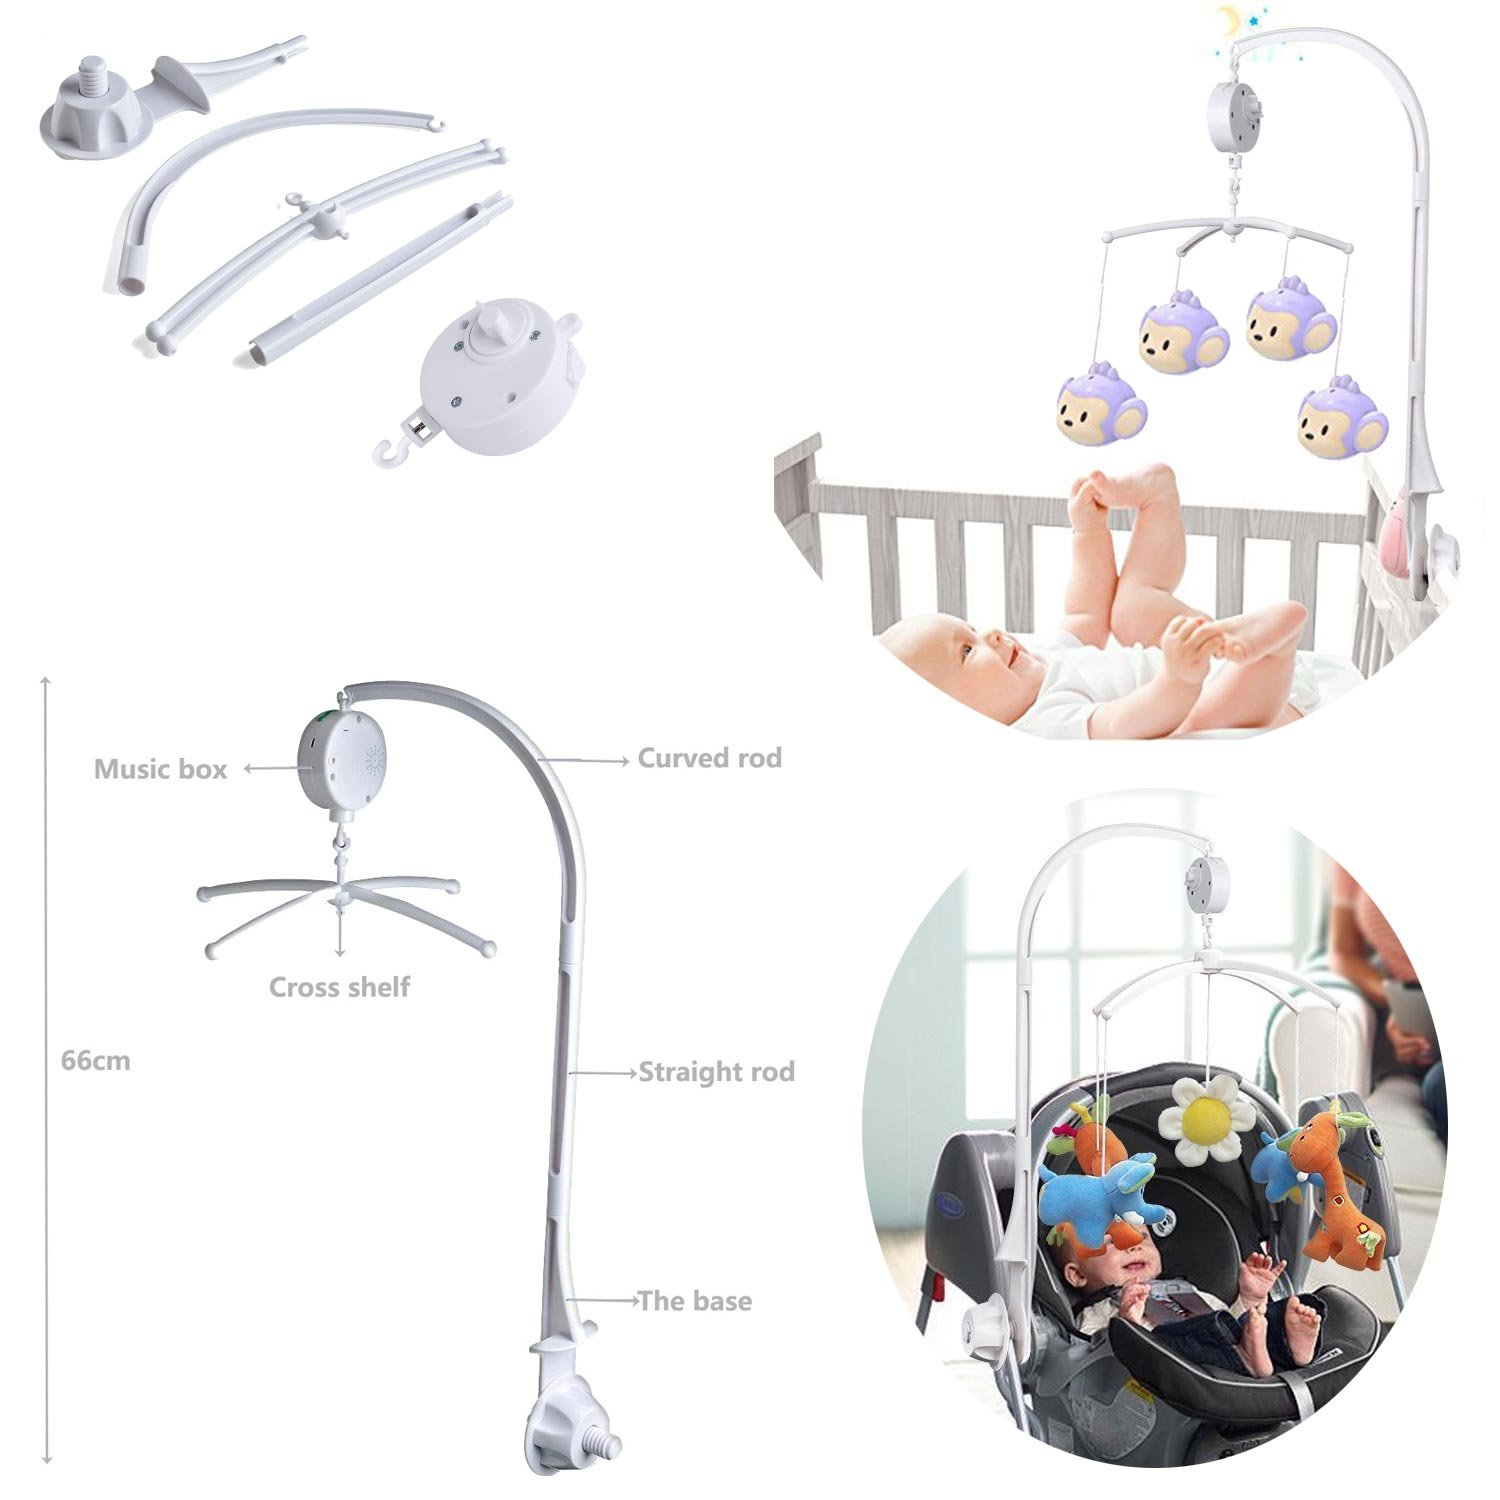 Baby Crib Mobile Bed Bell Holder Music Box Holder Arm Bracket Baby Bed Stent Set Mobile Hanger Set for Baby Bed Mobile Bed